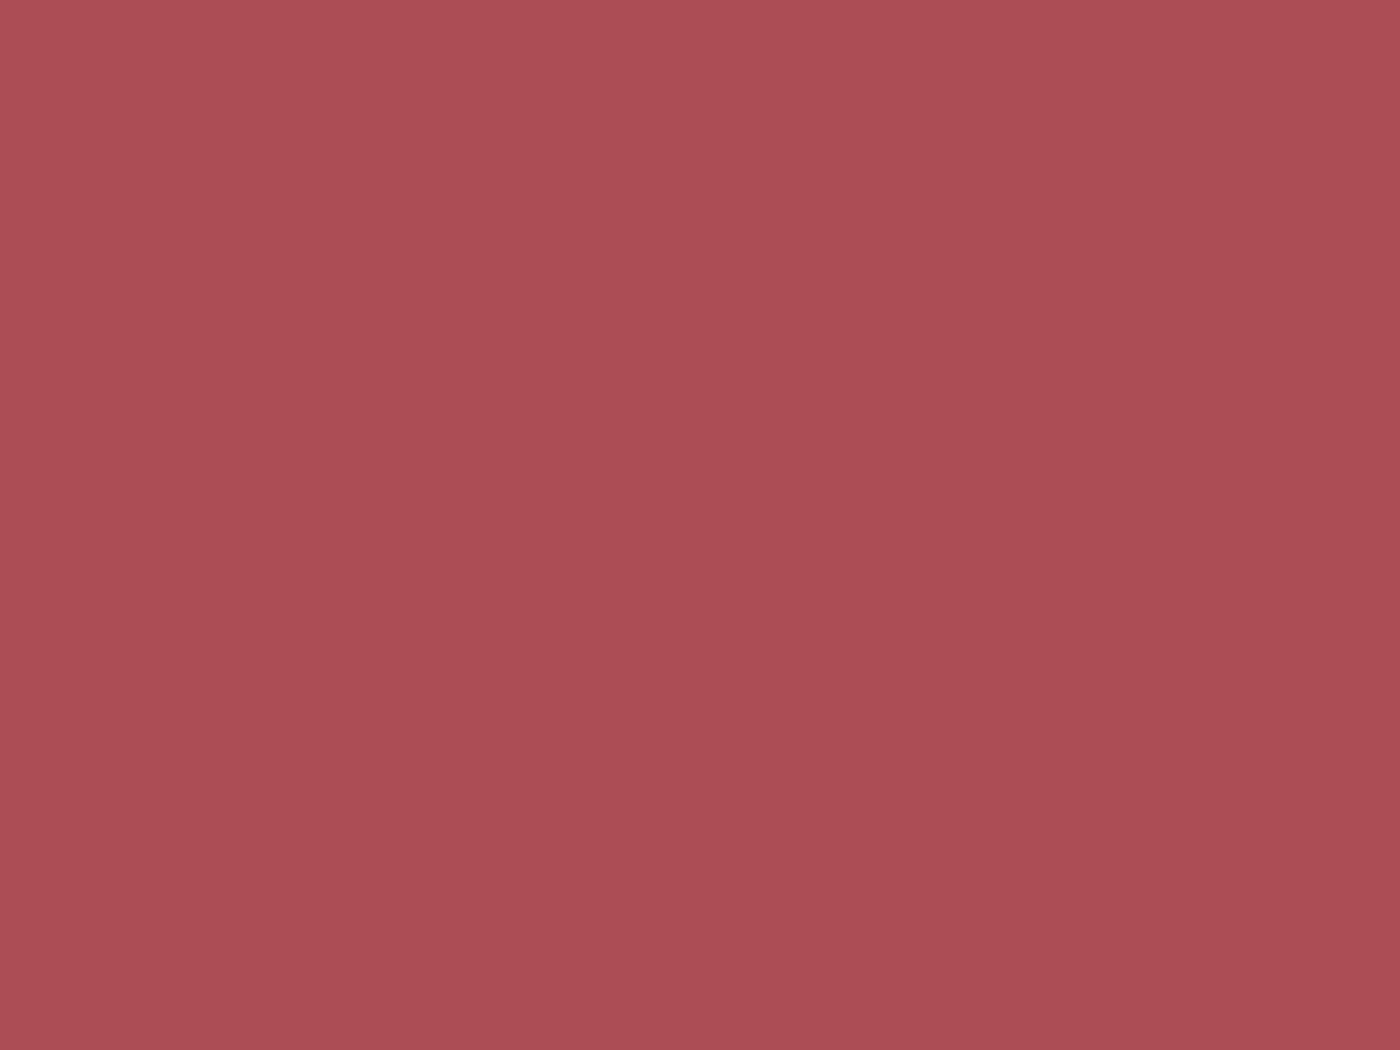 1400x1050 English Red Solid Color Background